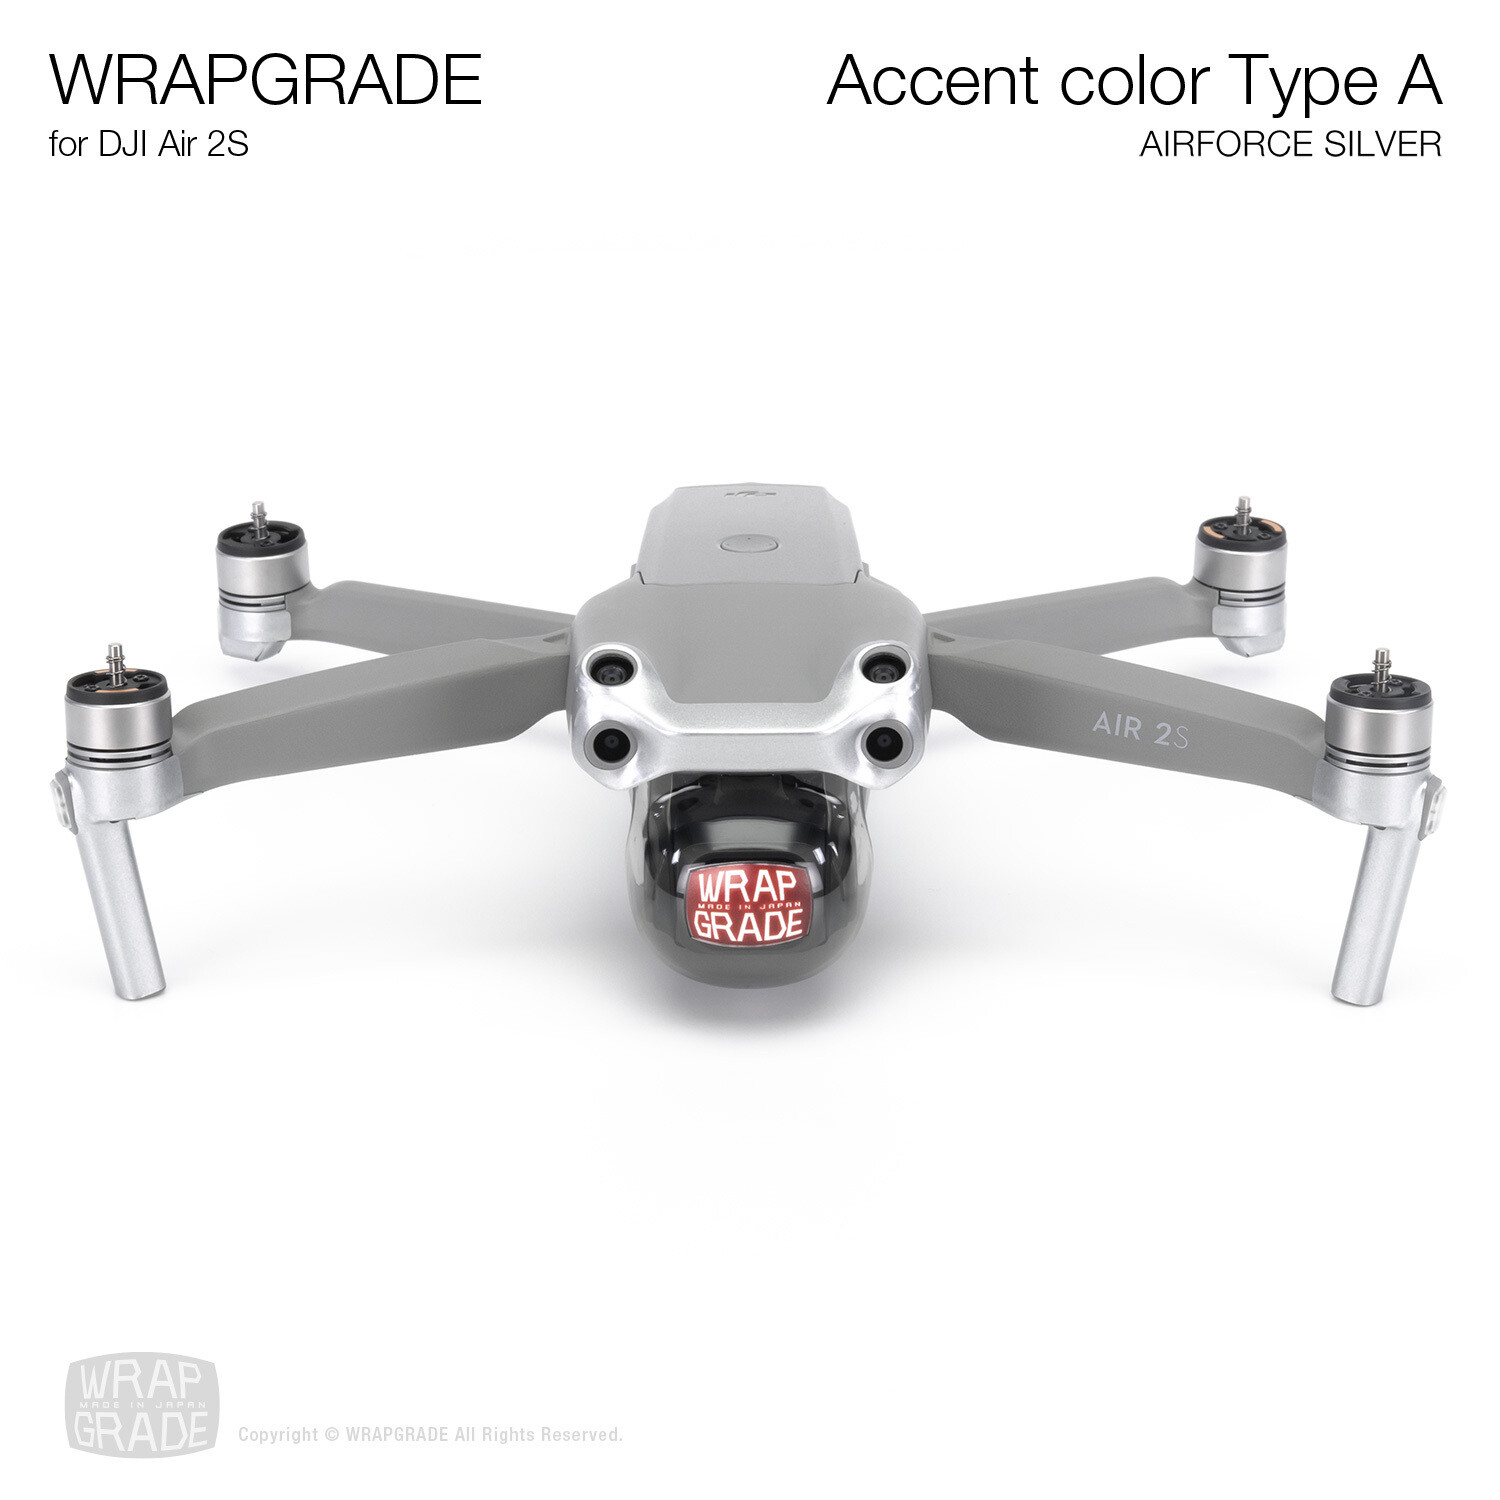 Wrapgrade Skin for DJI Air 2S   Accent Color A (AIRFORCE SILVER)